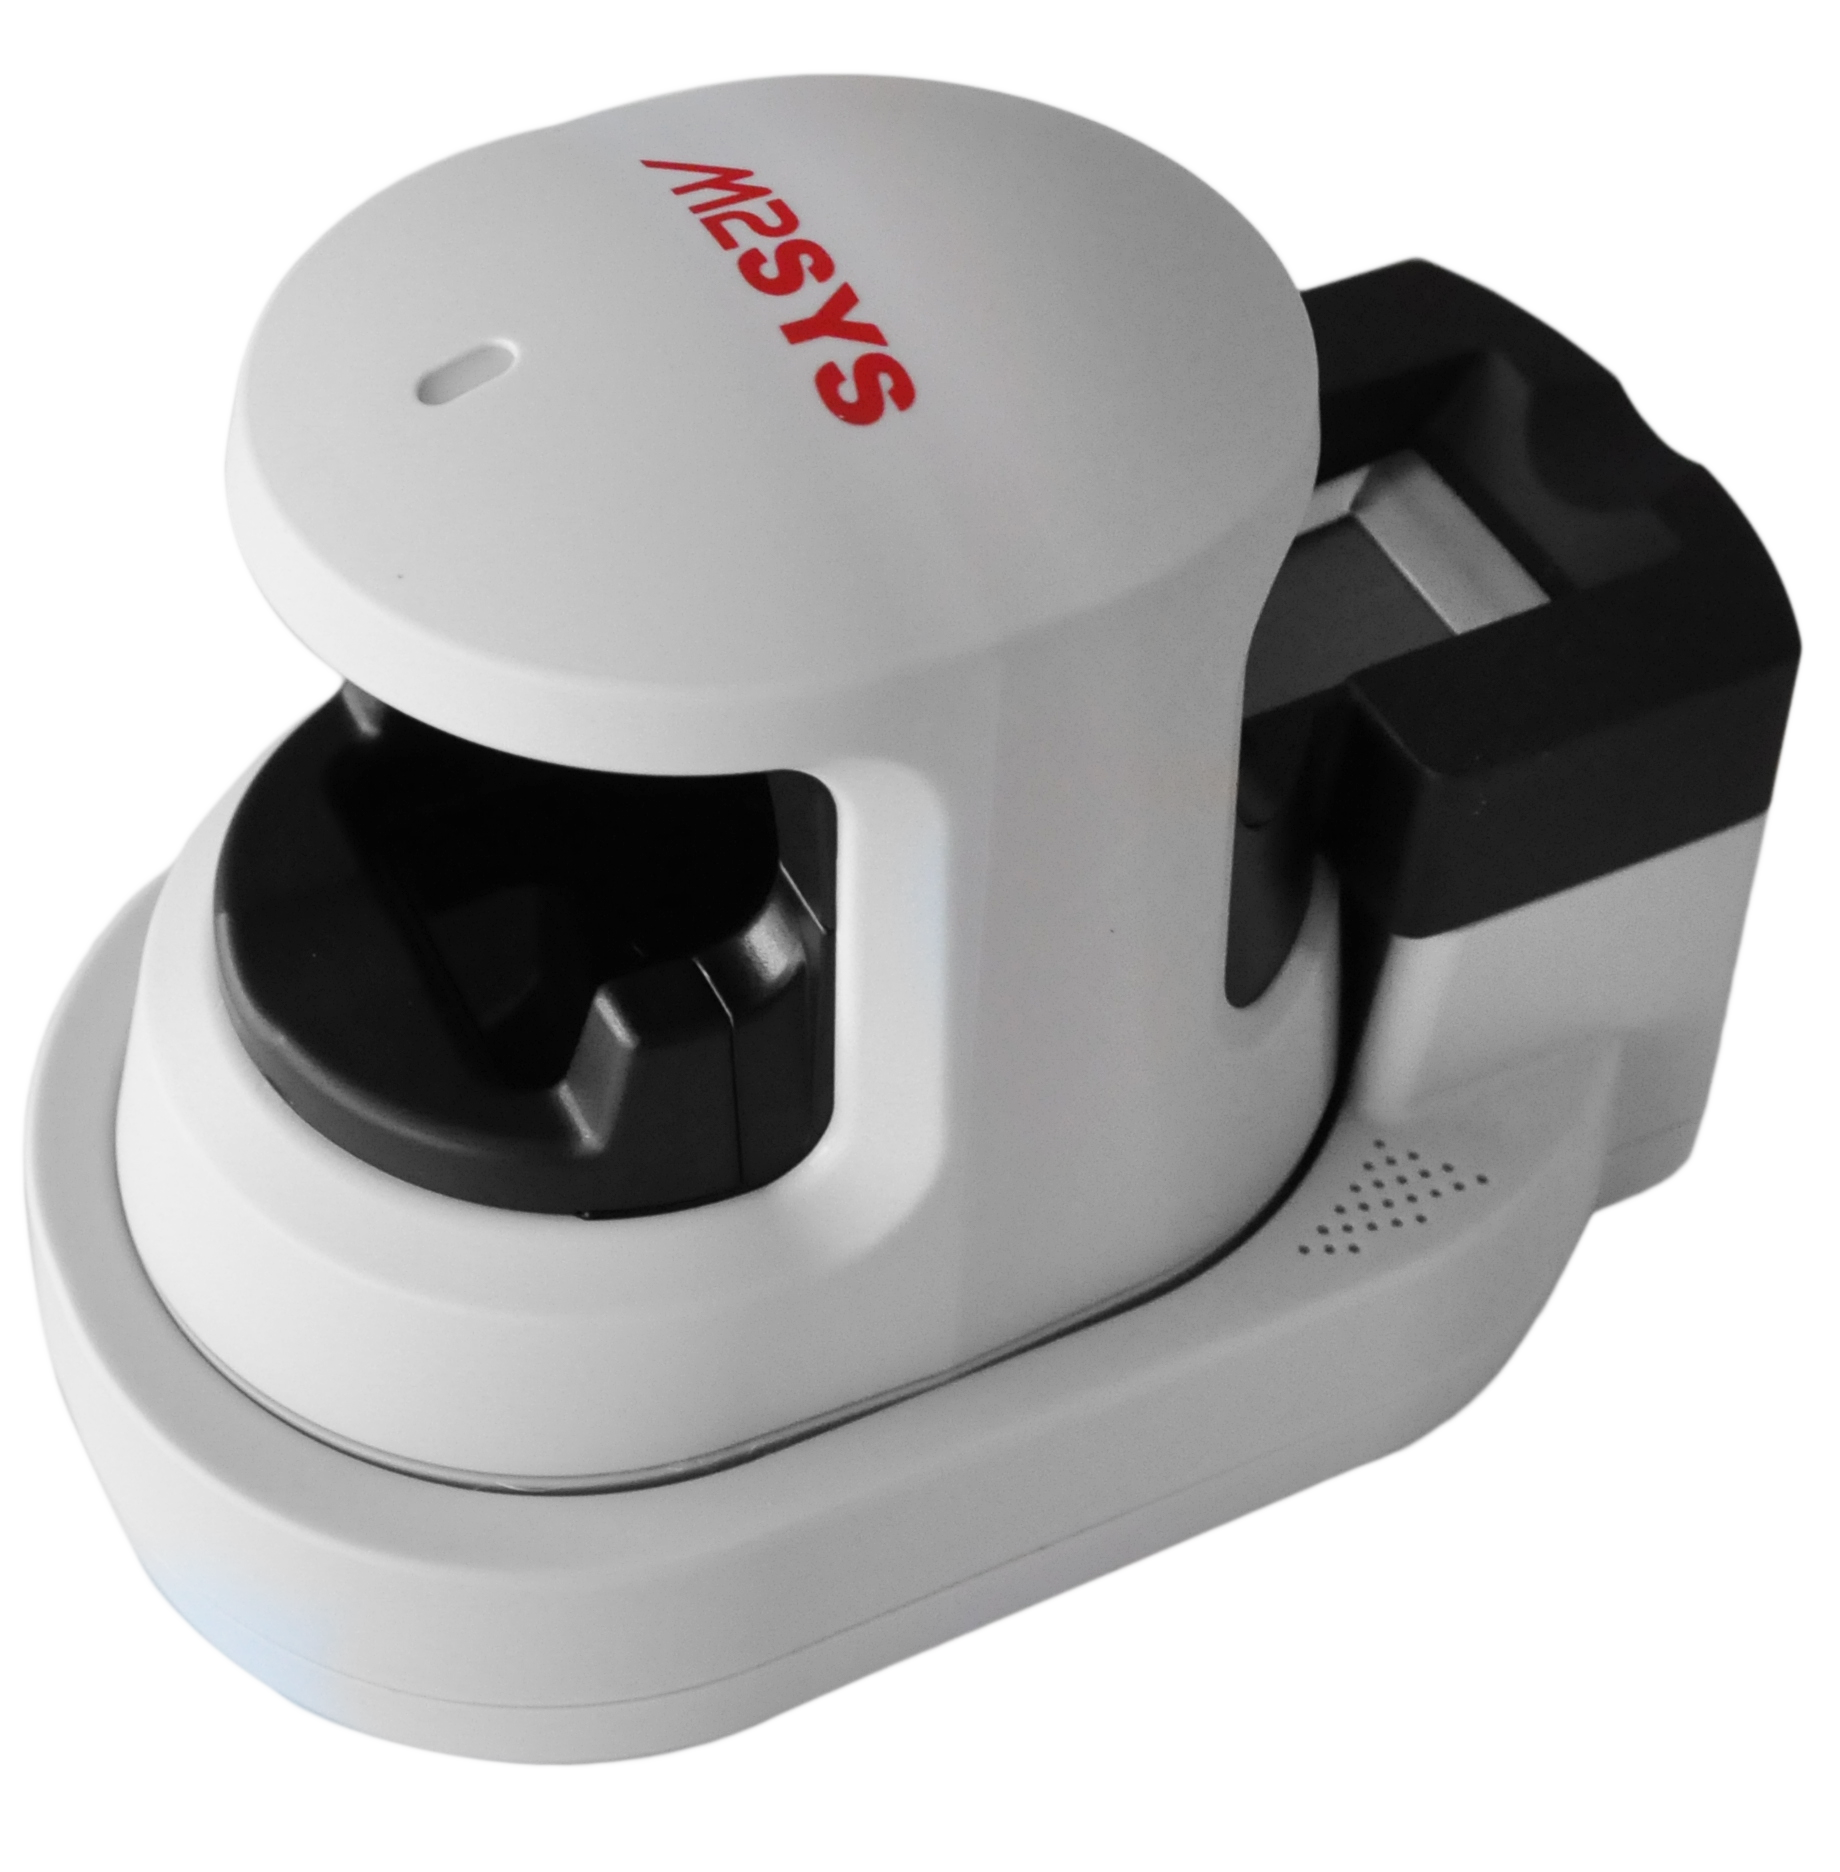 M2-FuseID is a multimosal biometric finger reader that simultaneously captures a fingerprint and finger vein pattern.